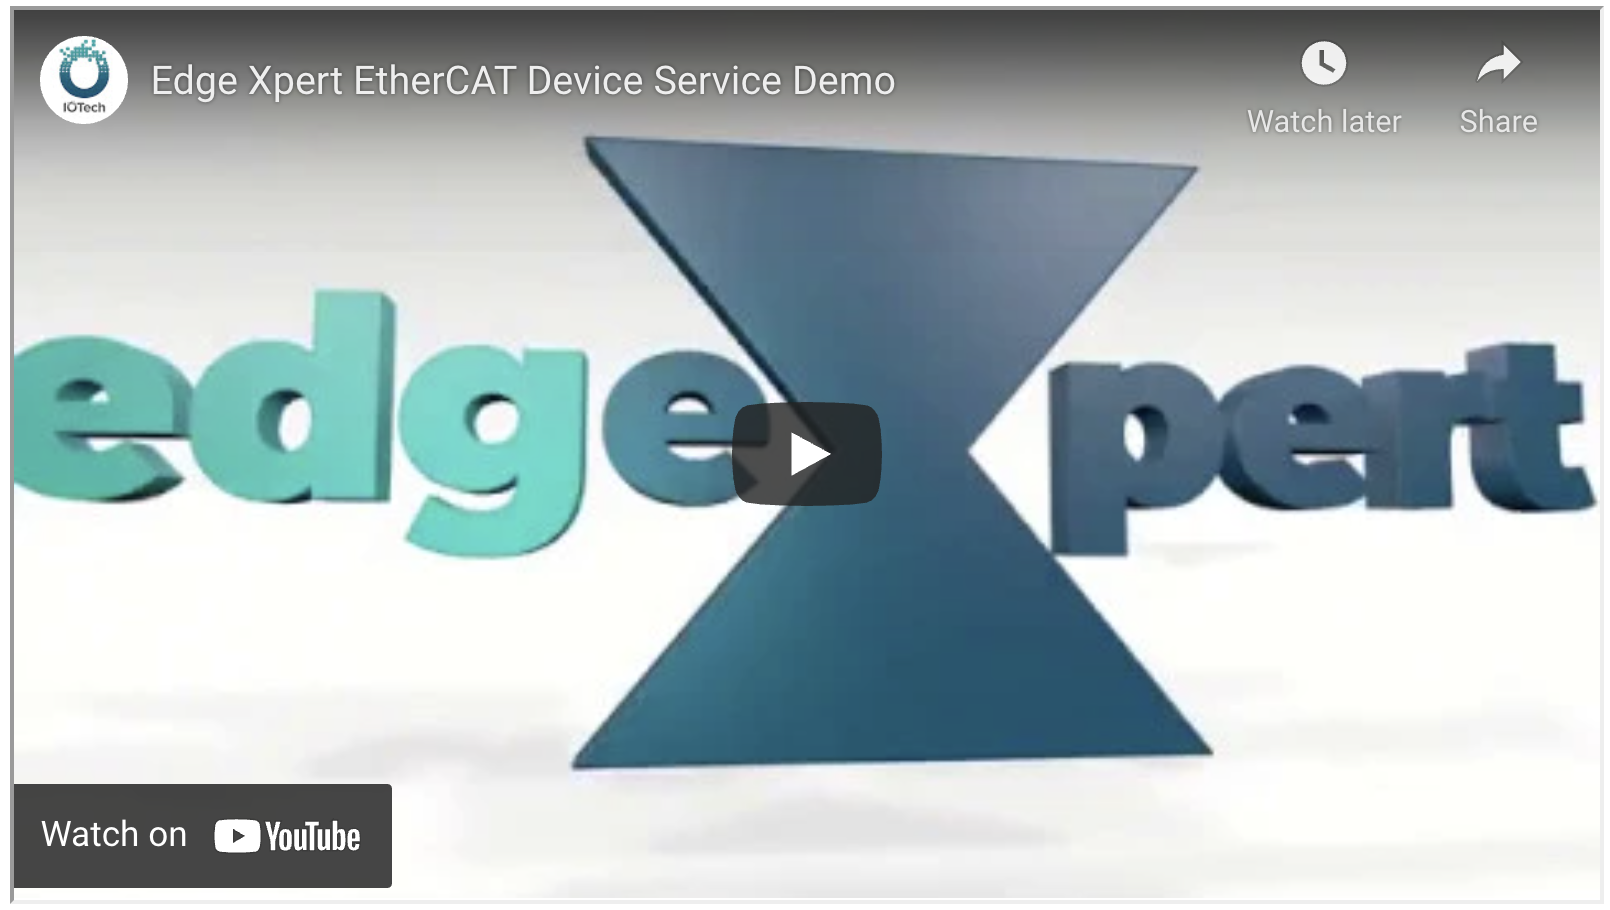 EtherCAT Support for Edge Xpert: Developer's Perspective